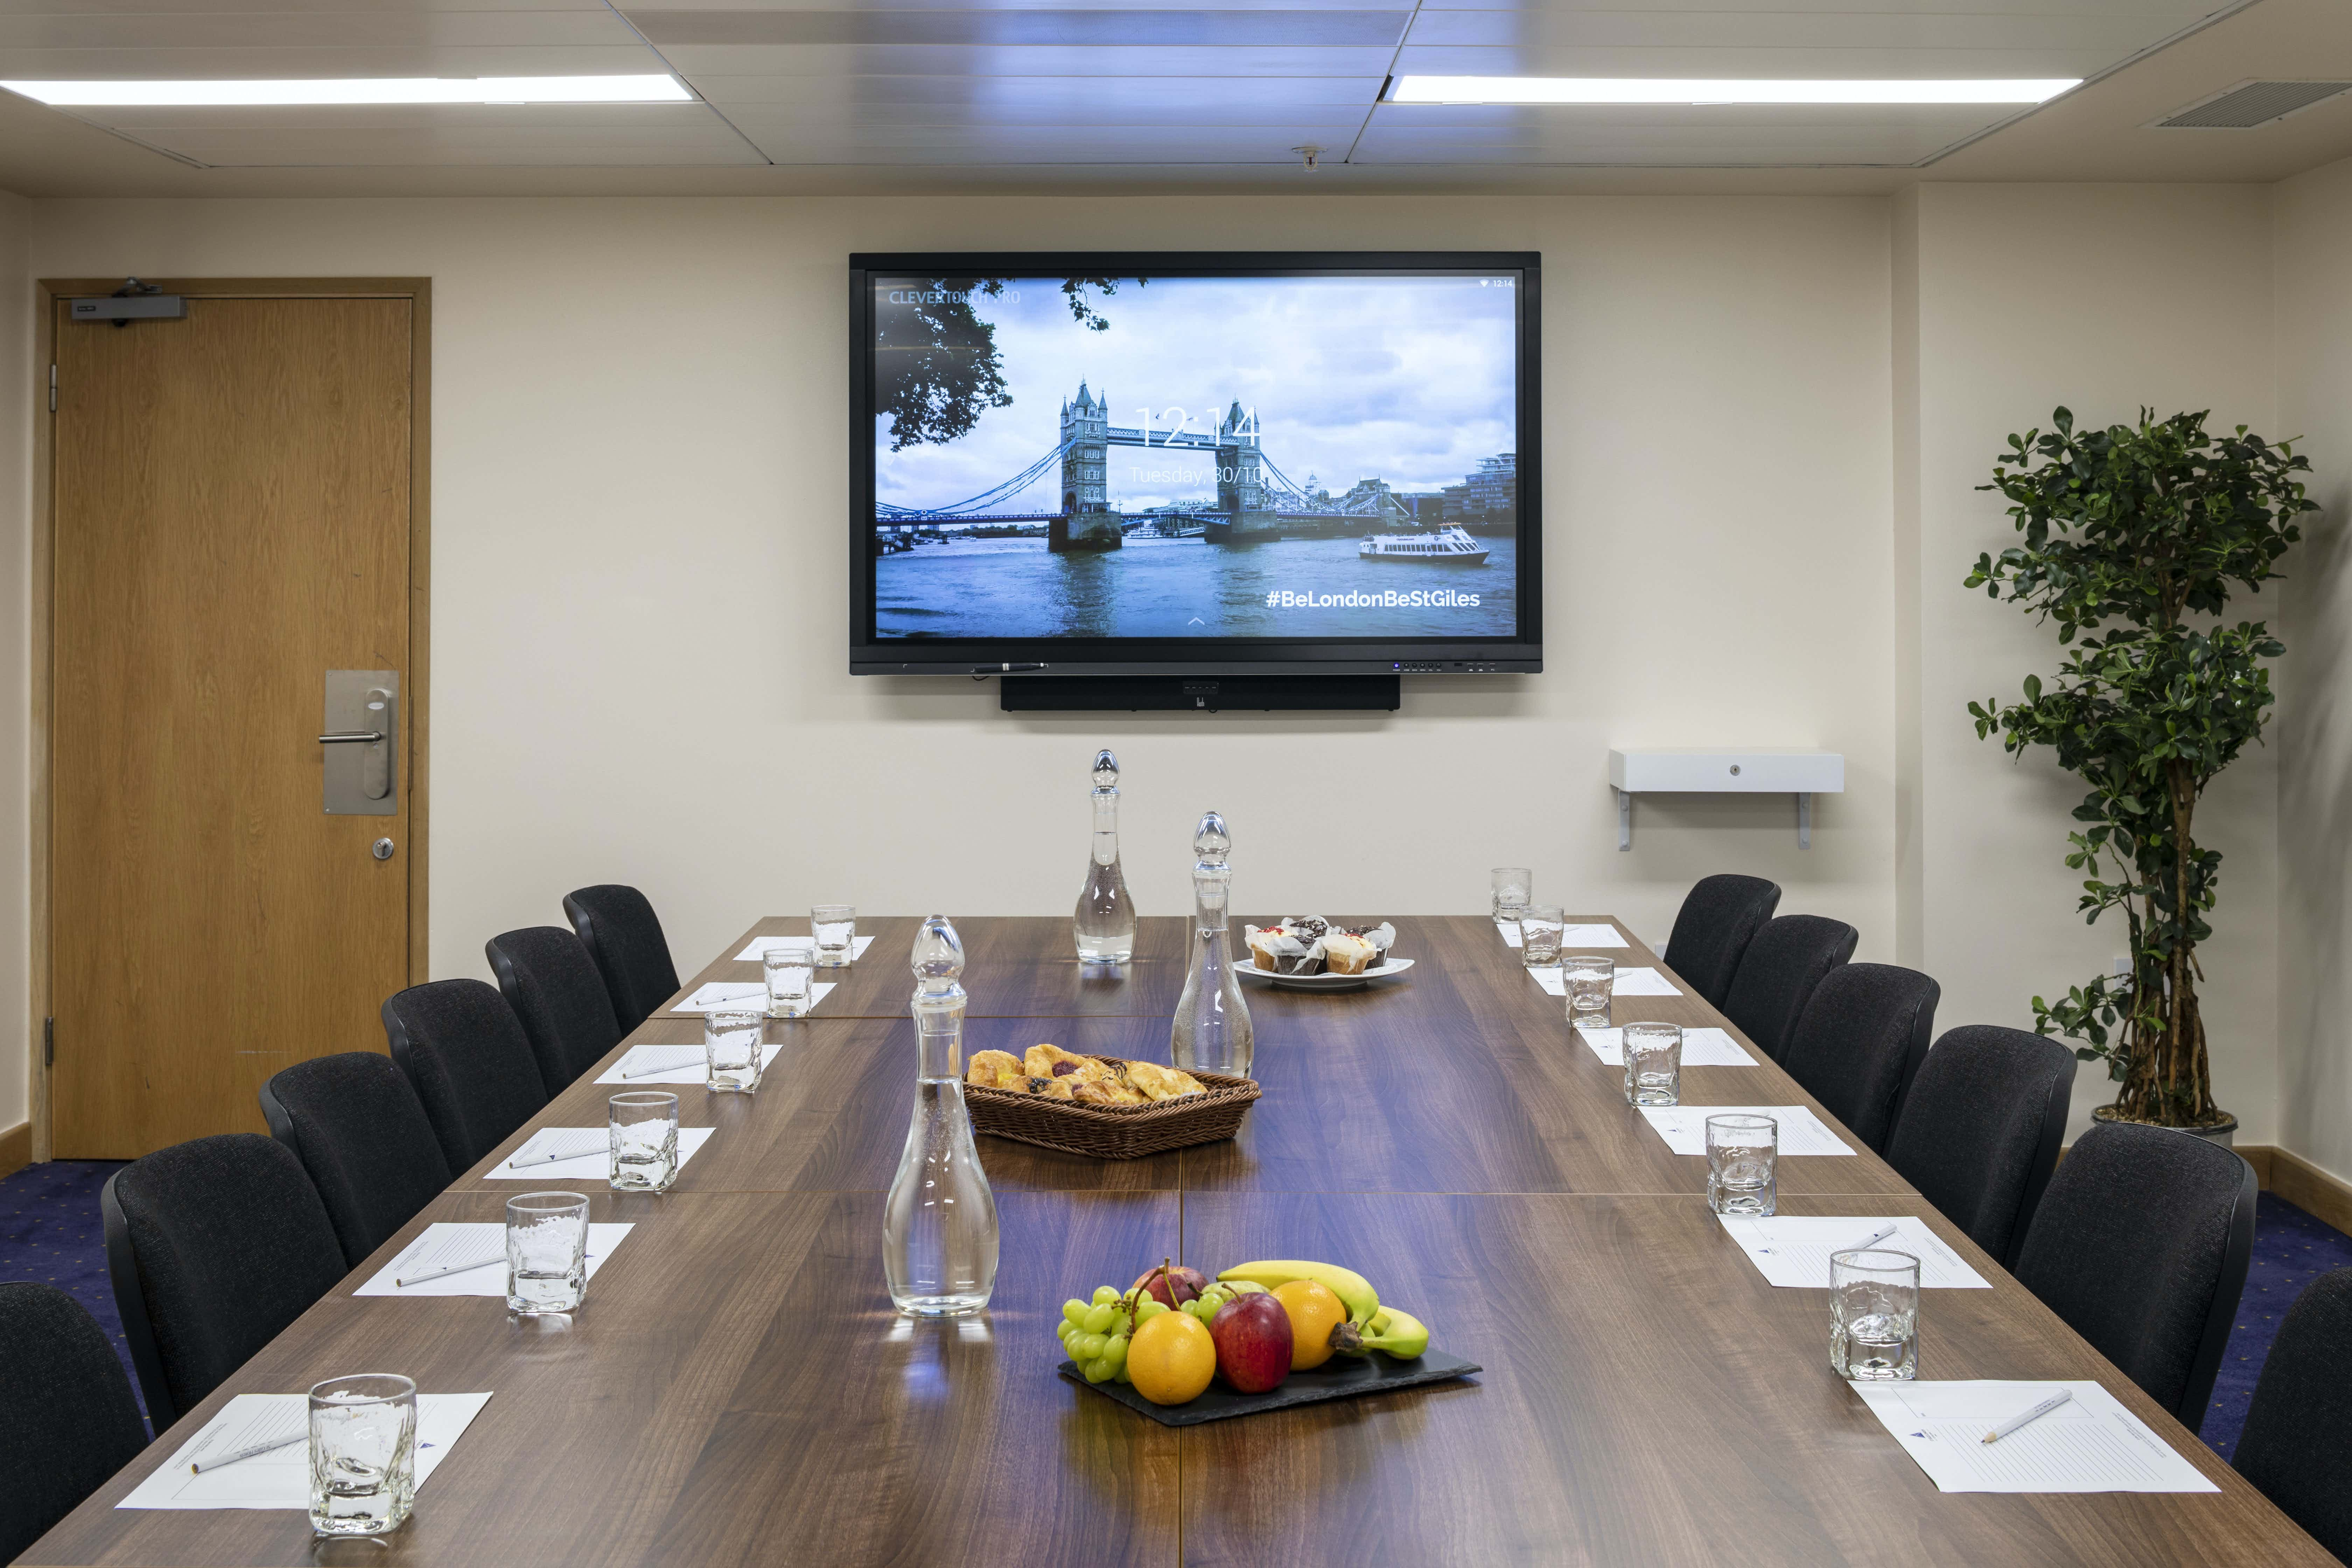 Conference Room 1, St Giles